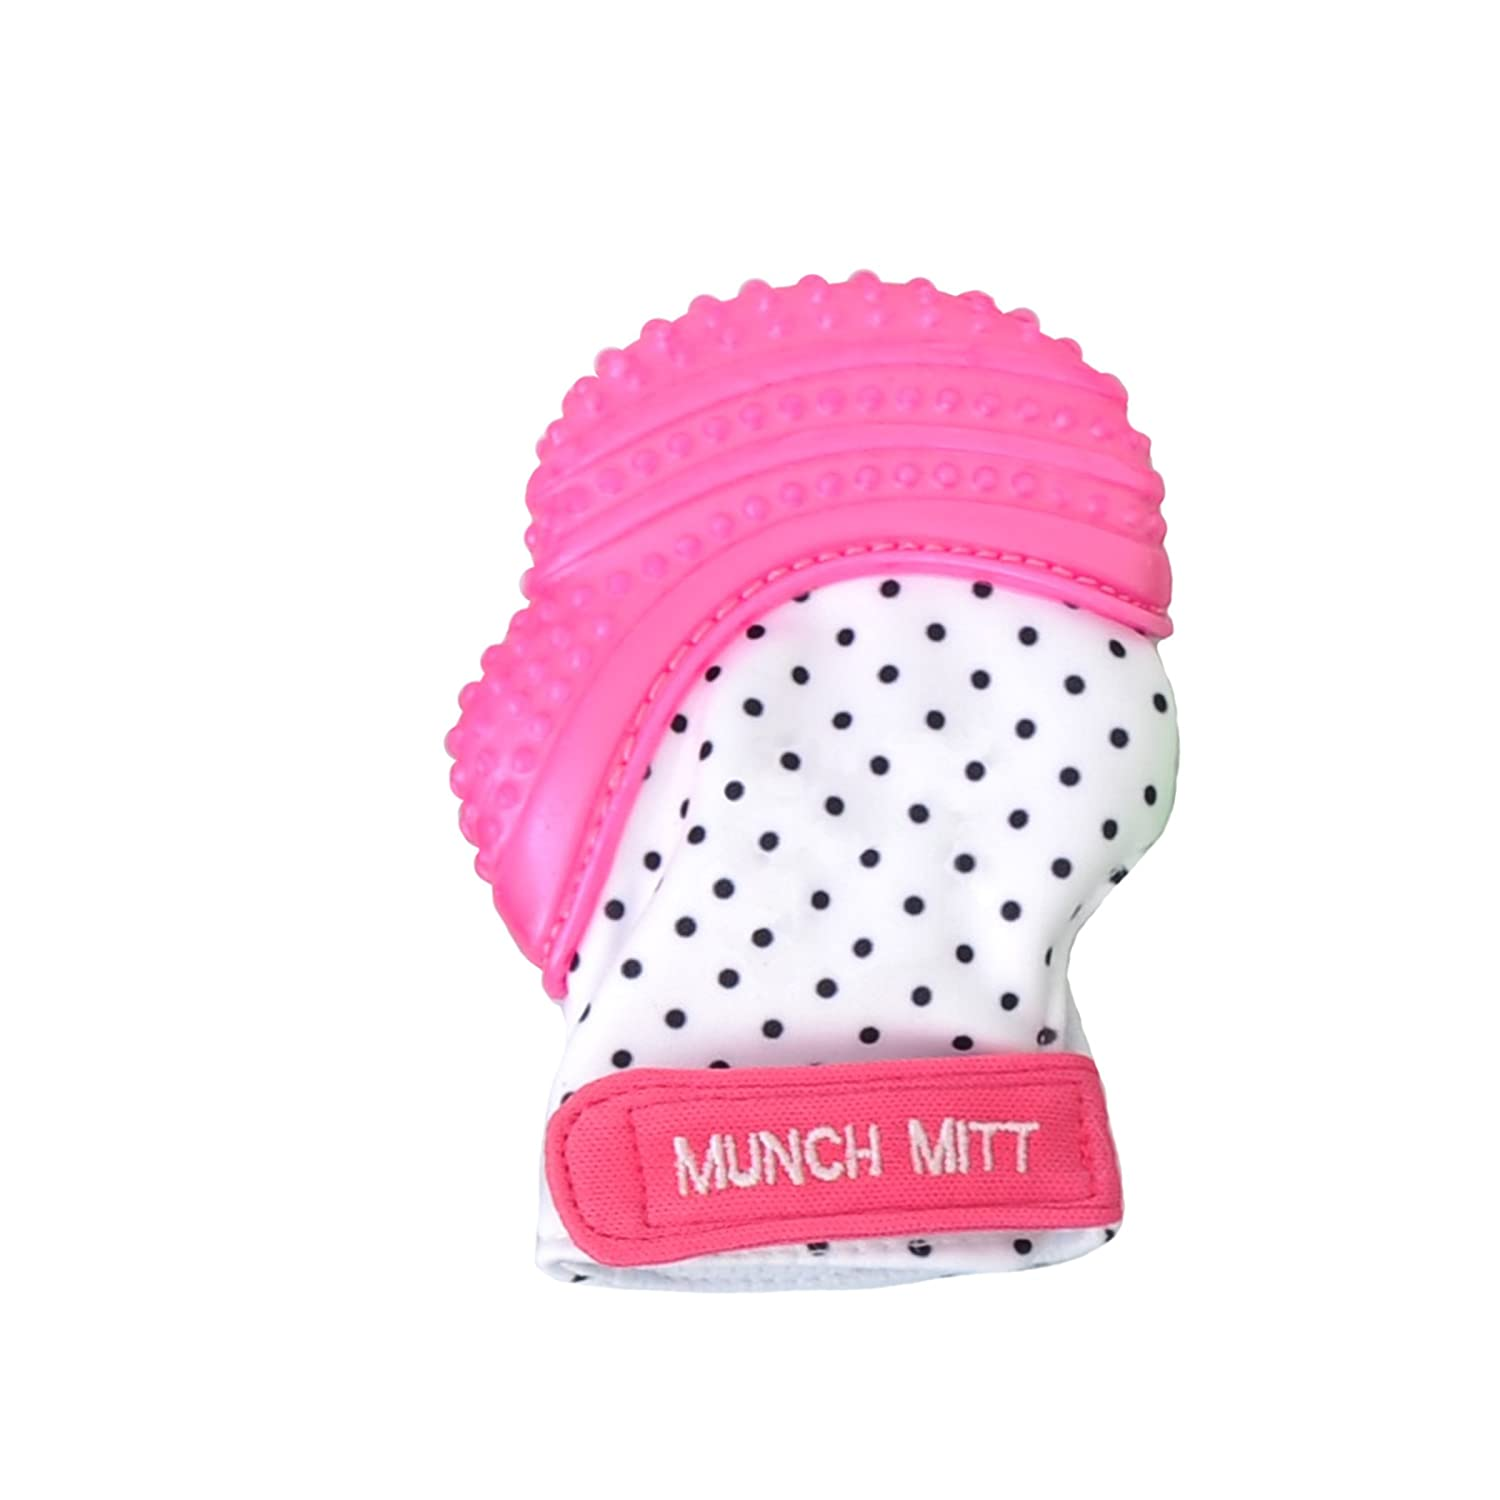 Munch Mitt Teething Mitten the Original Mom Invented Teething Toy- Teether Stays on Babys Hand for Pain Relief & Stimulation- Ideal Baby Shower Gift with Handy Travel/Laundry Bag- Pink Shimmer Unicorn Malarkey Kids